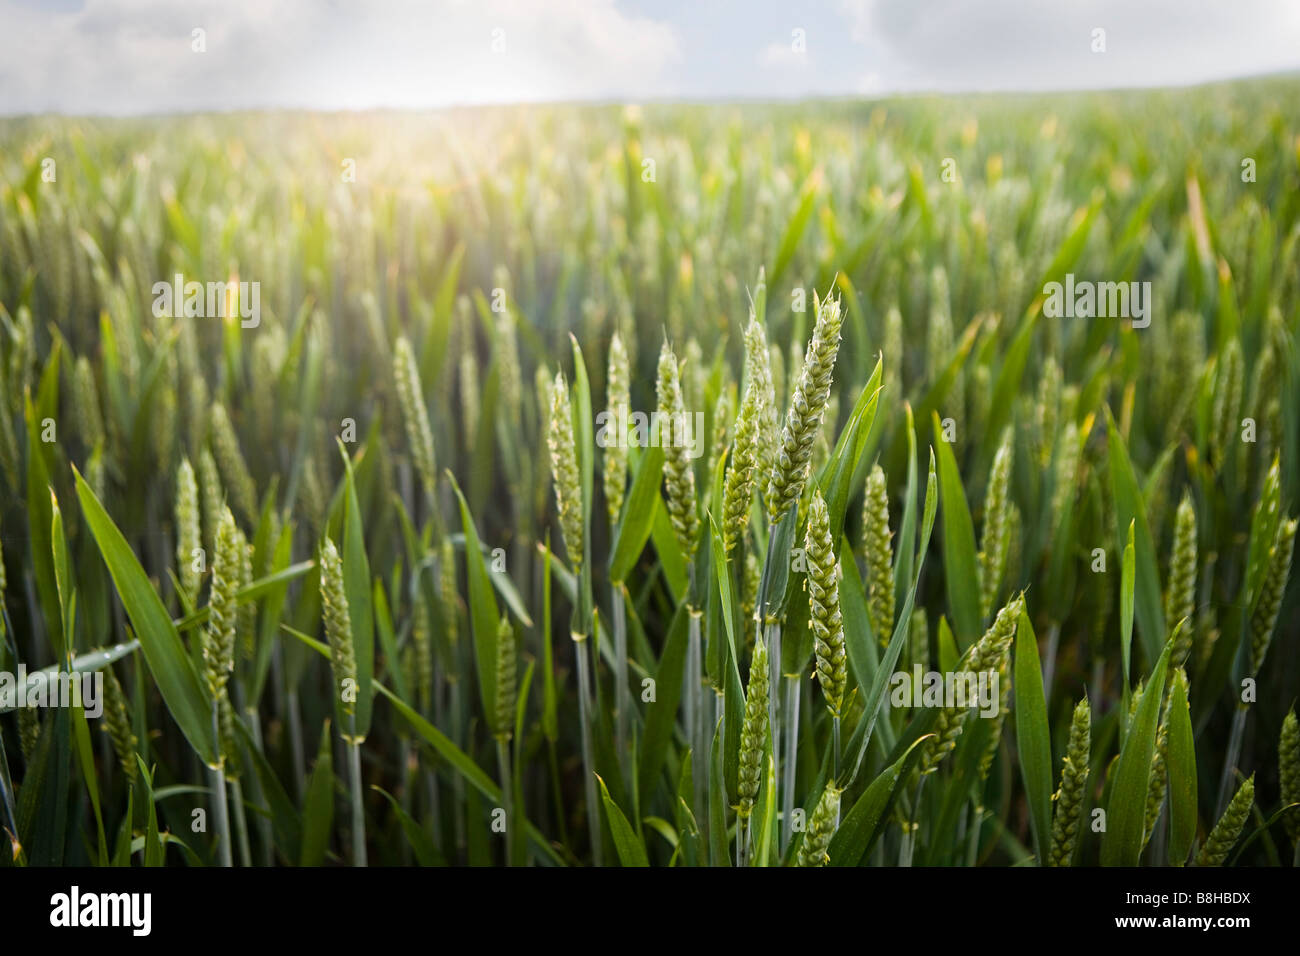 Close up shot of Barley field - Stock Image